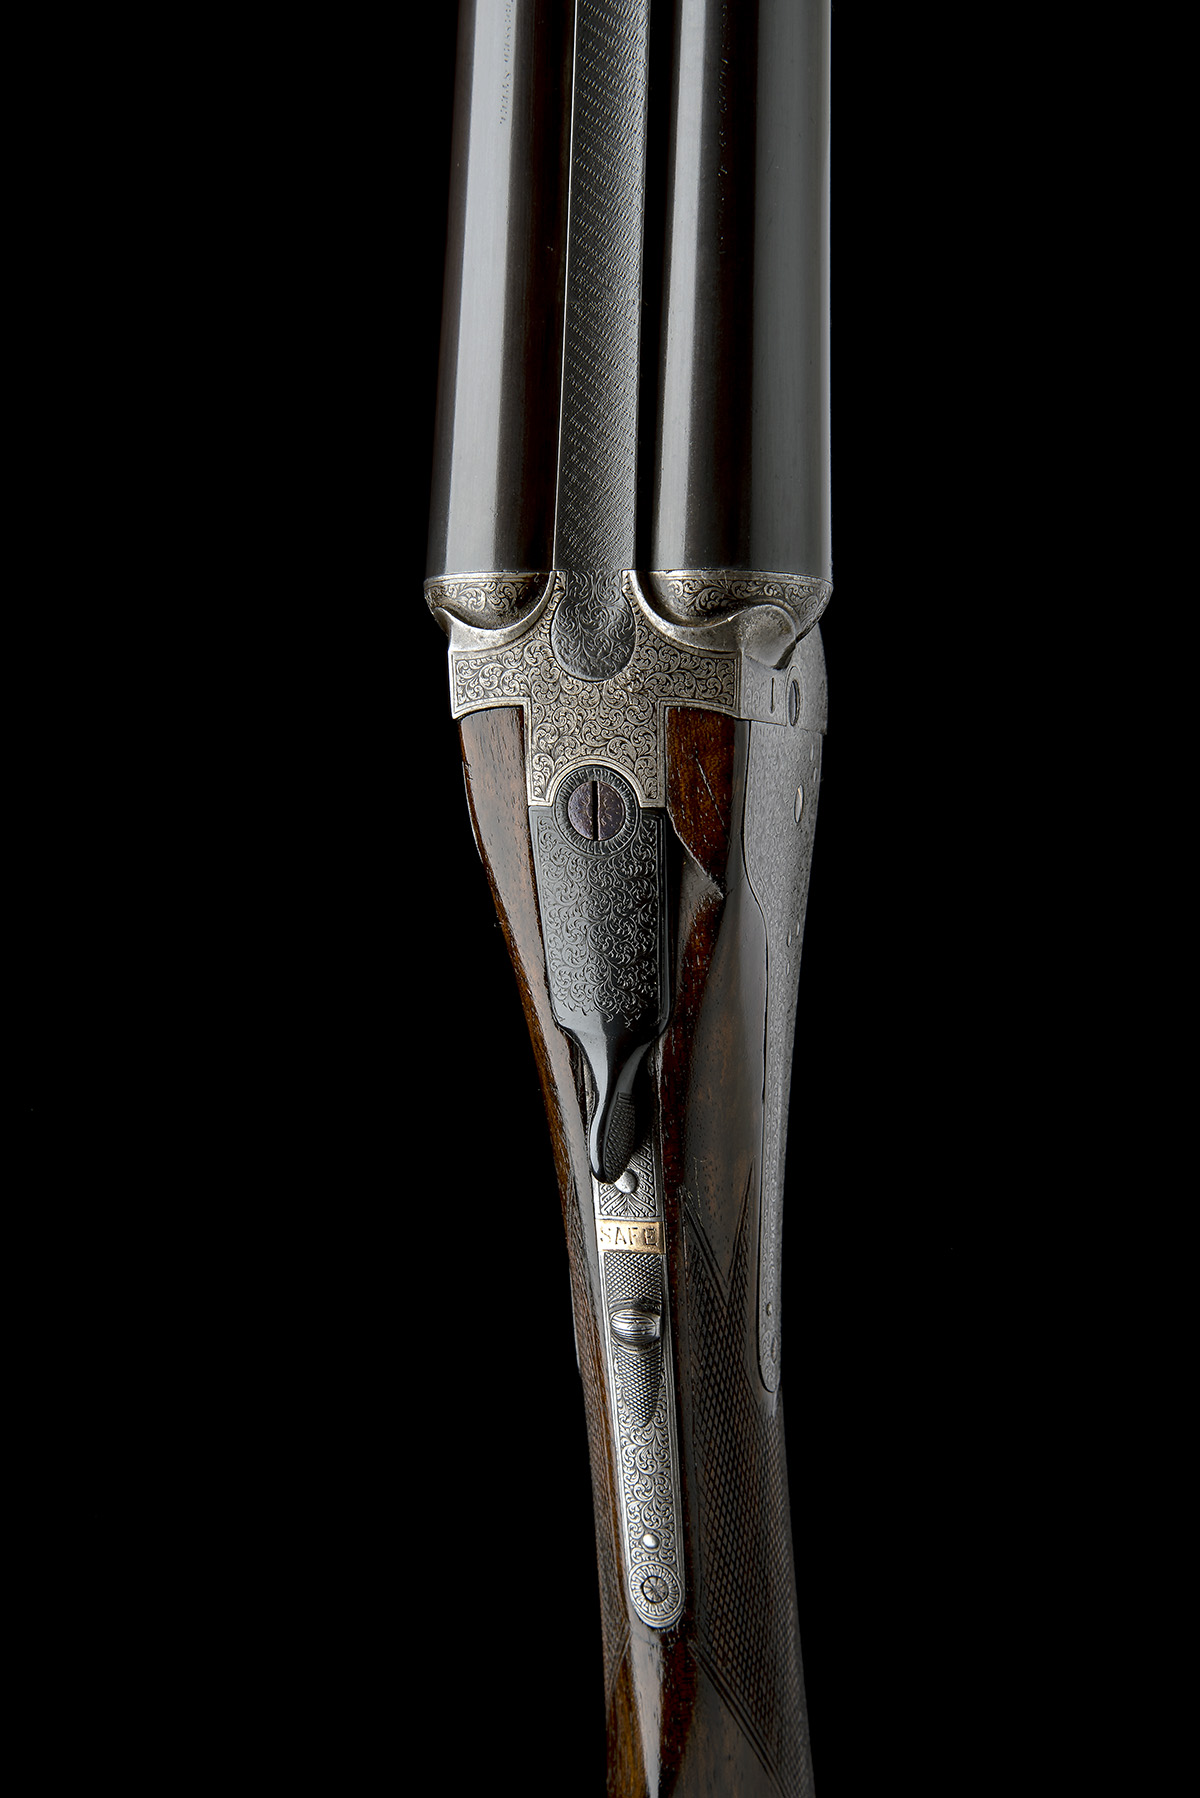 FREDc. T. BAKER A 12-BORE NEEDHAM 1874 PATENT HAMMERLESS SIDELOCK EJECTOR, serial no. 6749, circa - Image 6 of 11